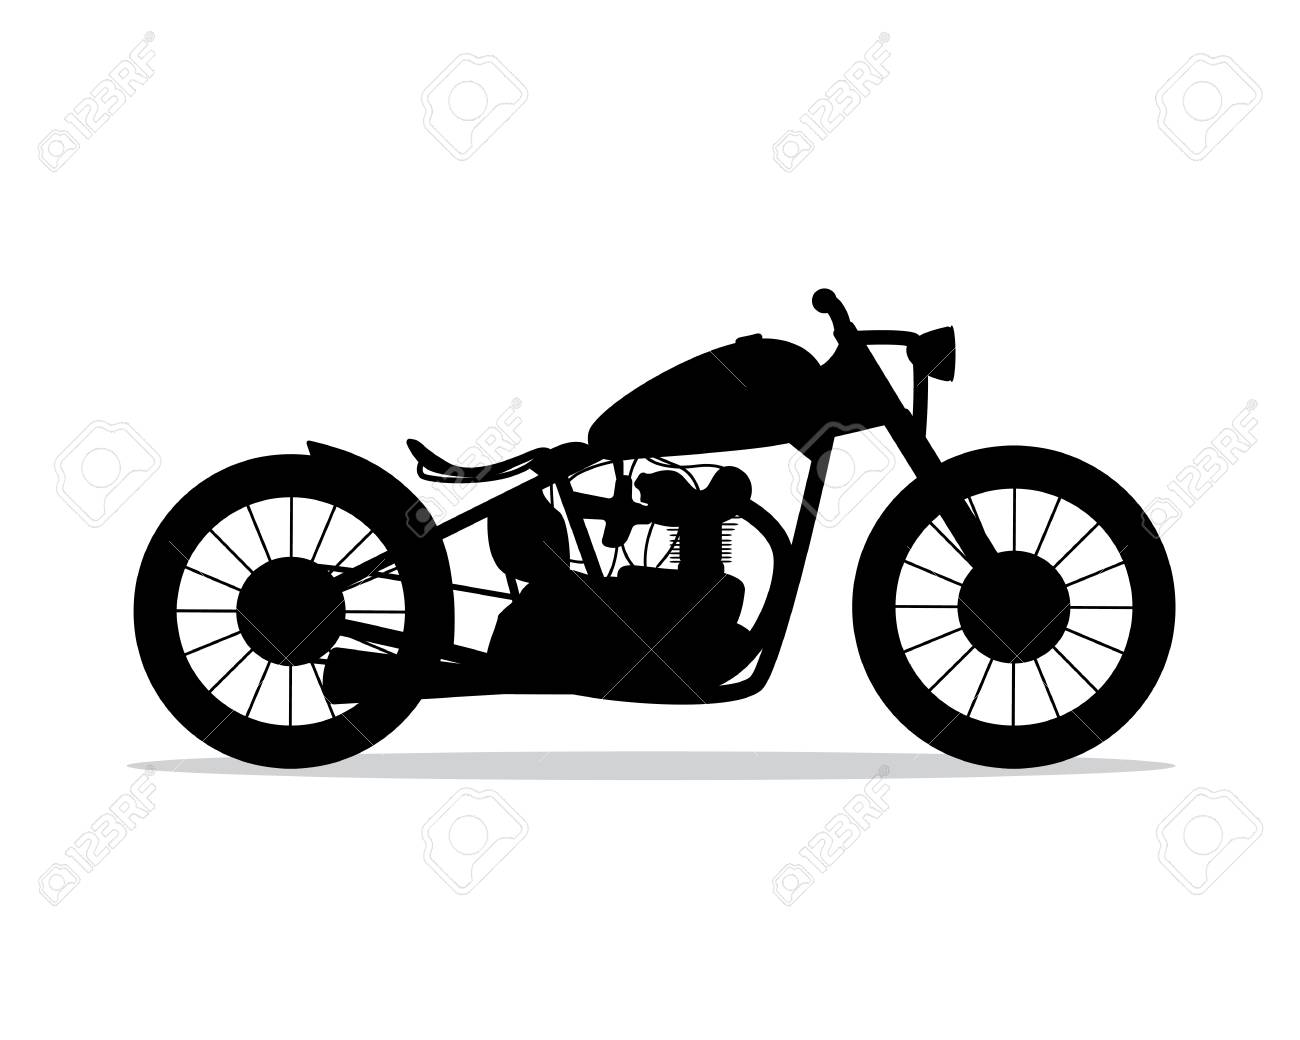 Motorcycle Silhouette Design Illustration Silhouette Style Design